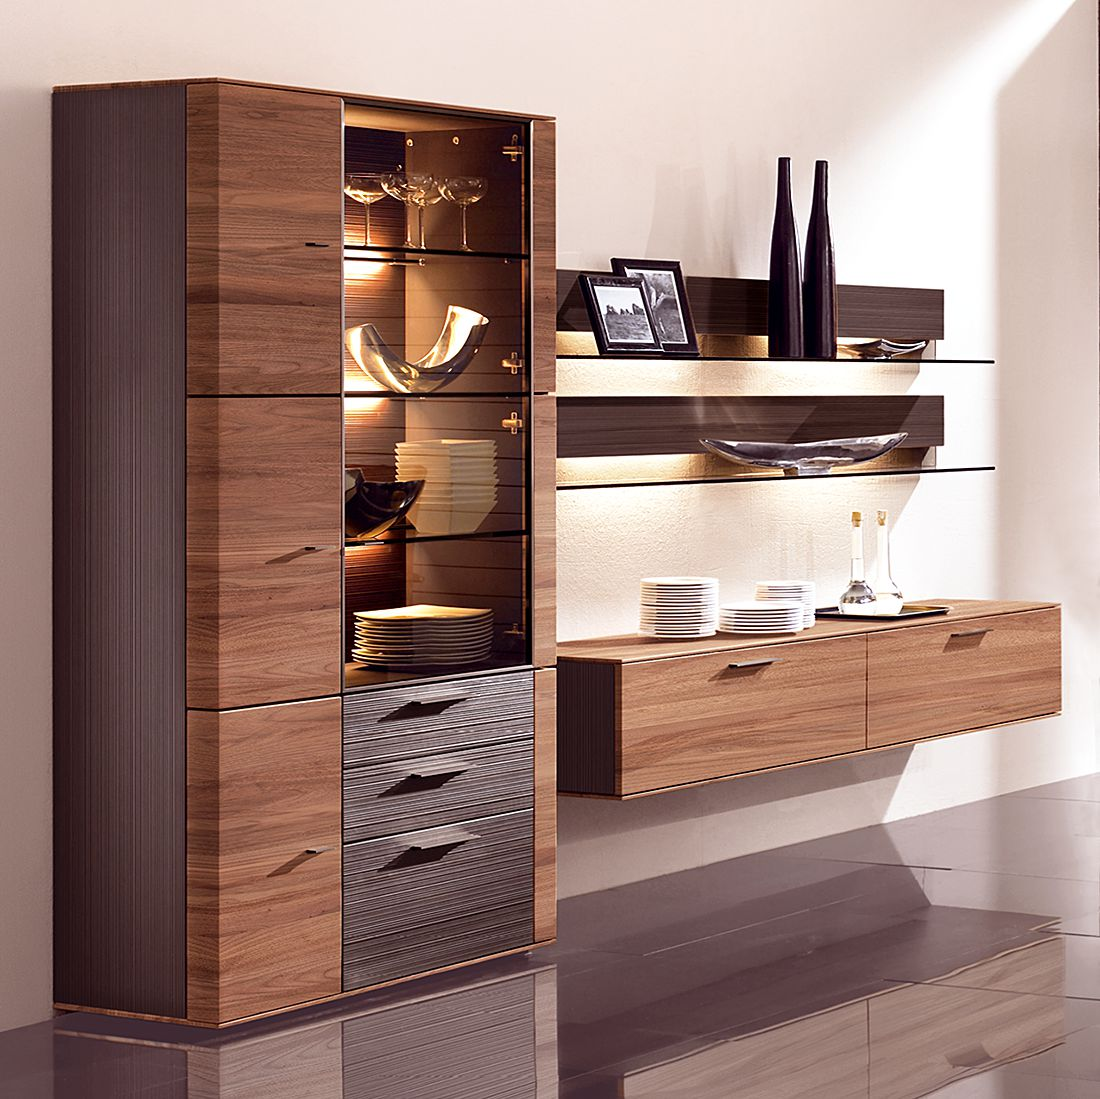 cando i 4delig massief walnotenhout zonder verlichting. Black Bedroom Furniture Sets. Home Design Ideas